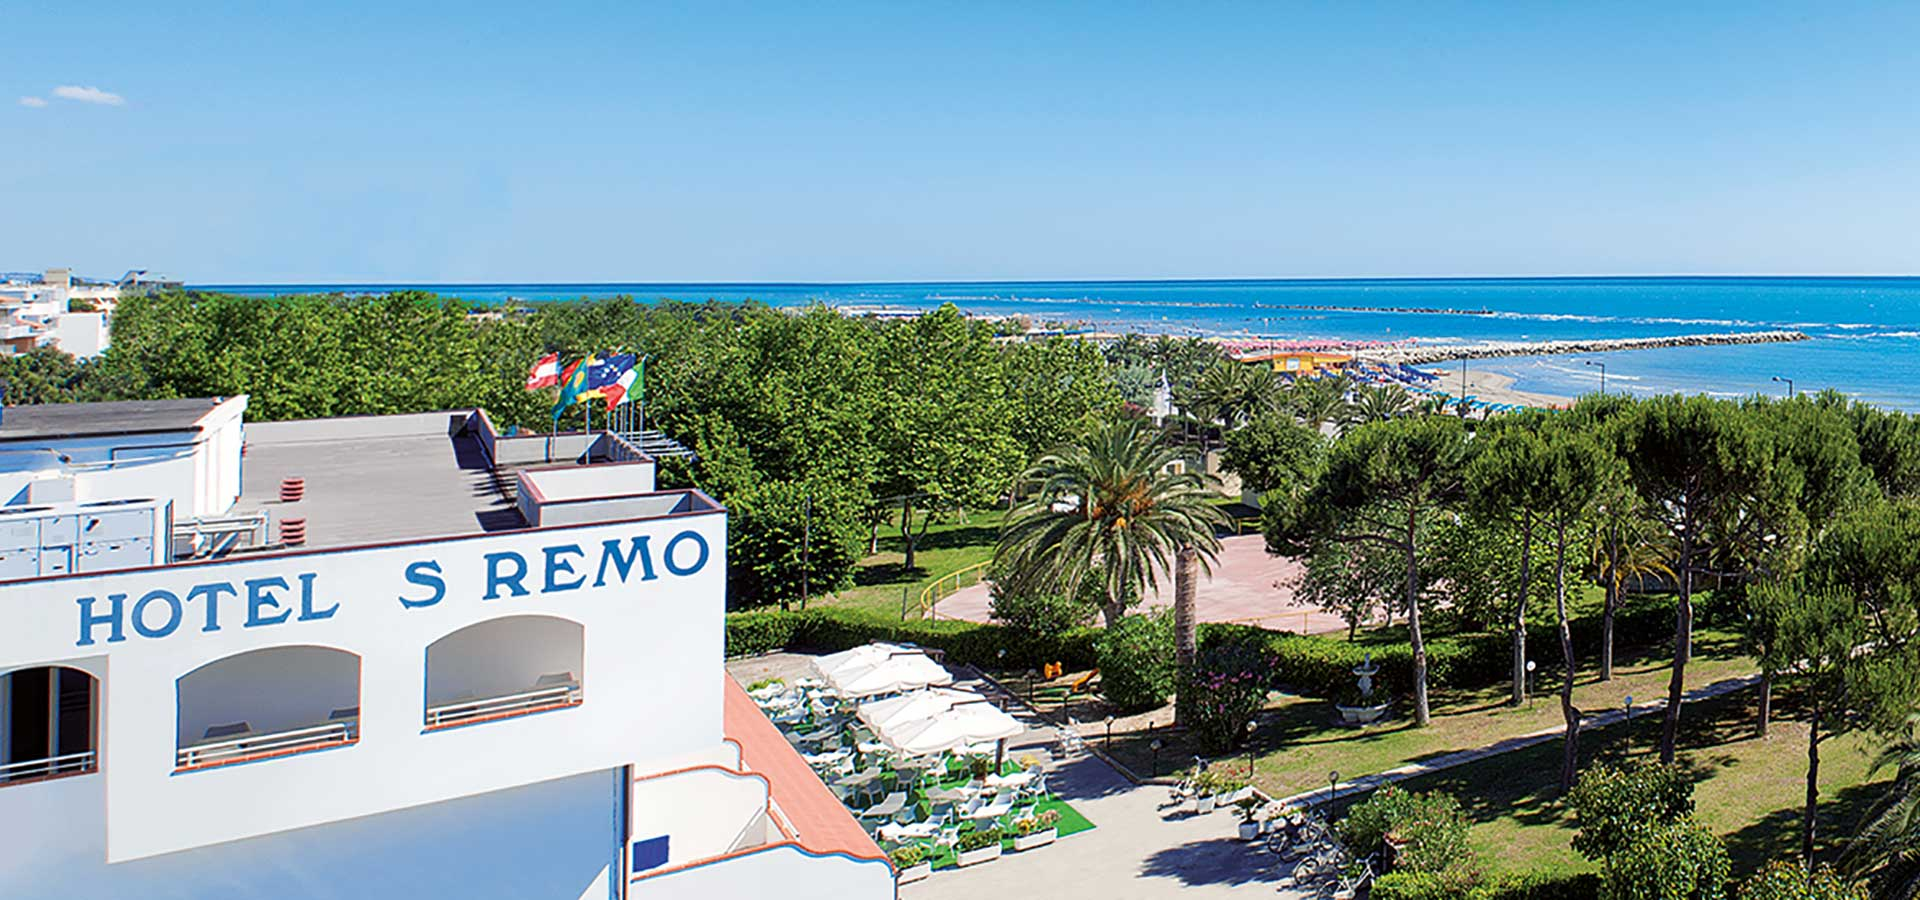 Hotel San Remo - Welcome <br/>to Hotel San Remo